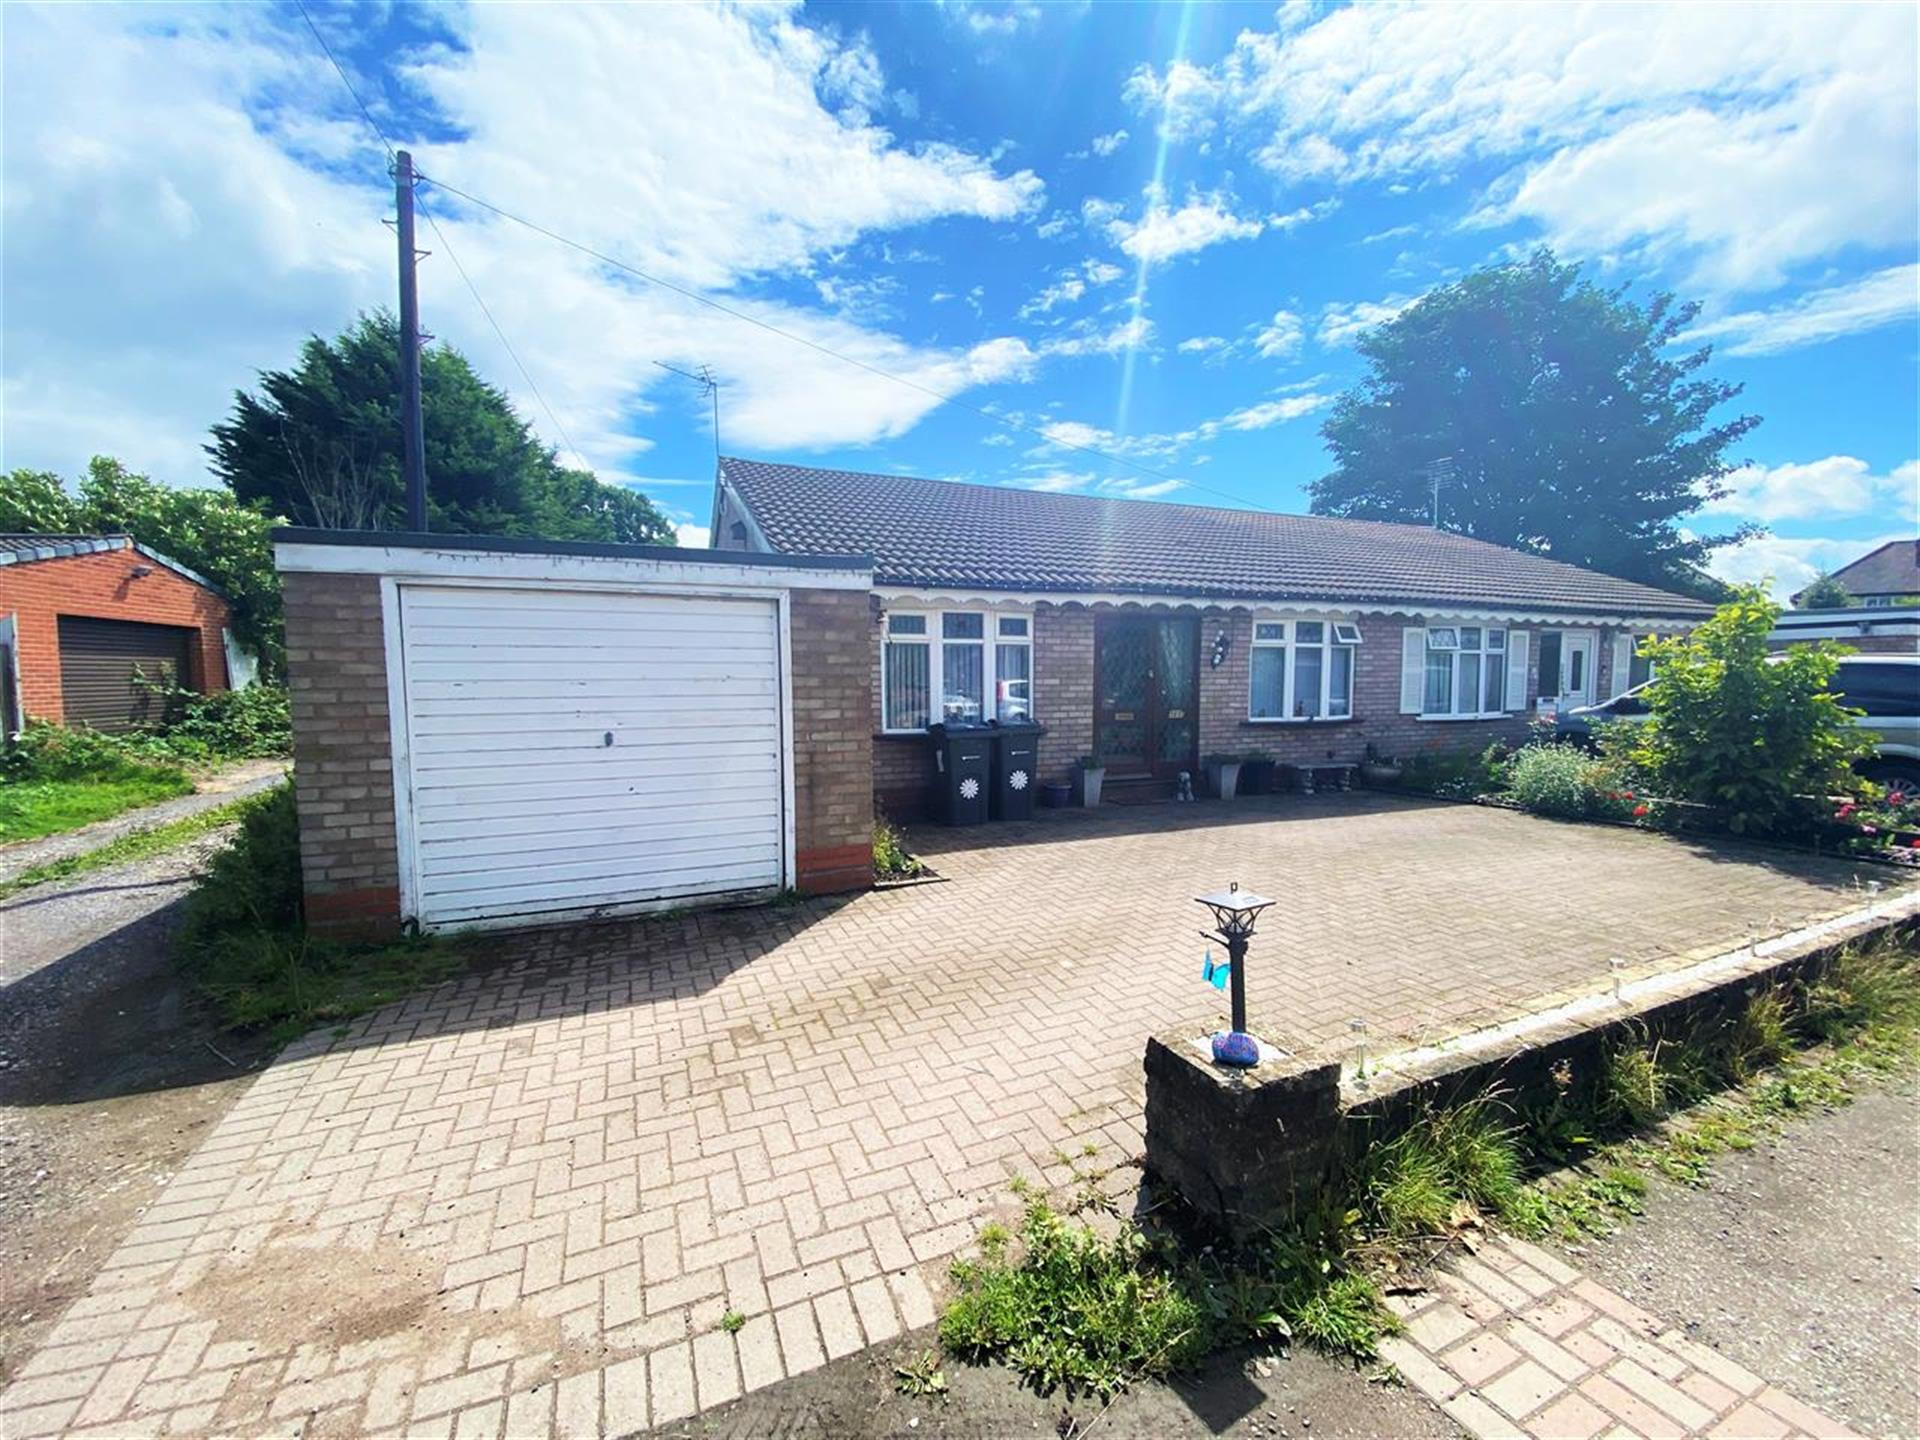 2 Bedroom Bungalow For Sale - Main Picture